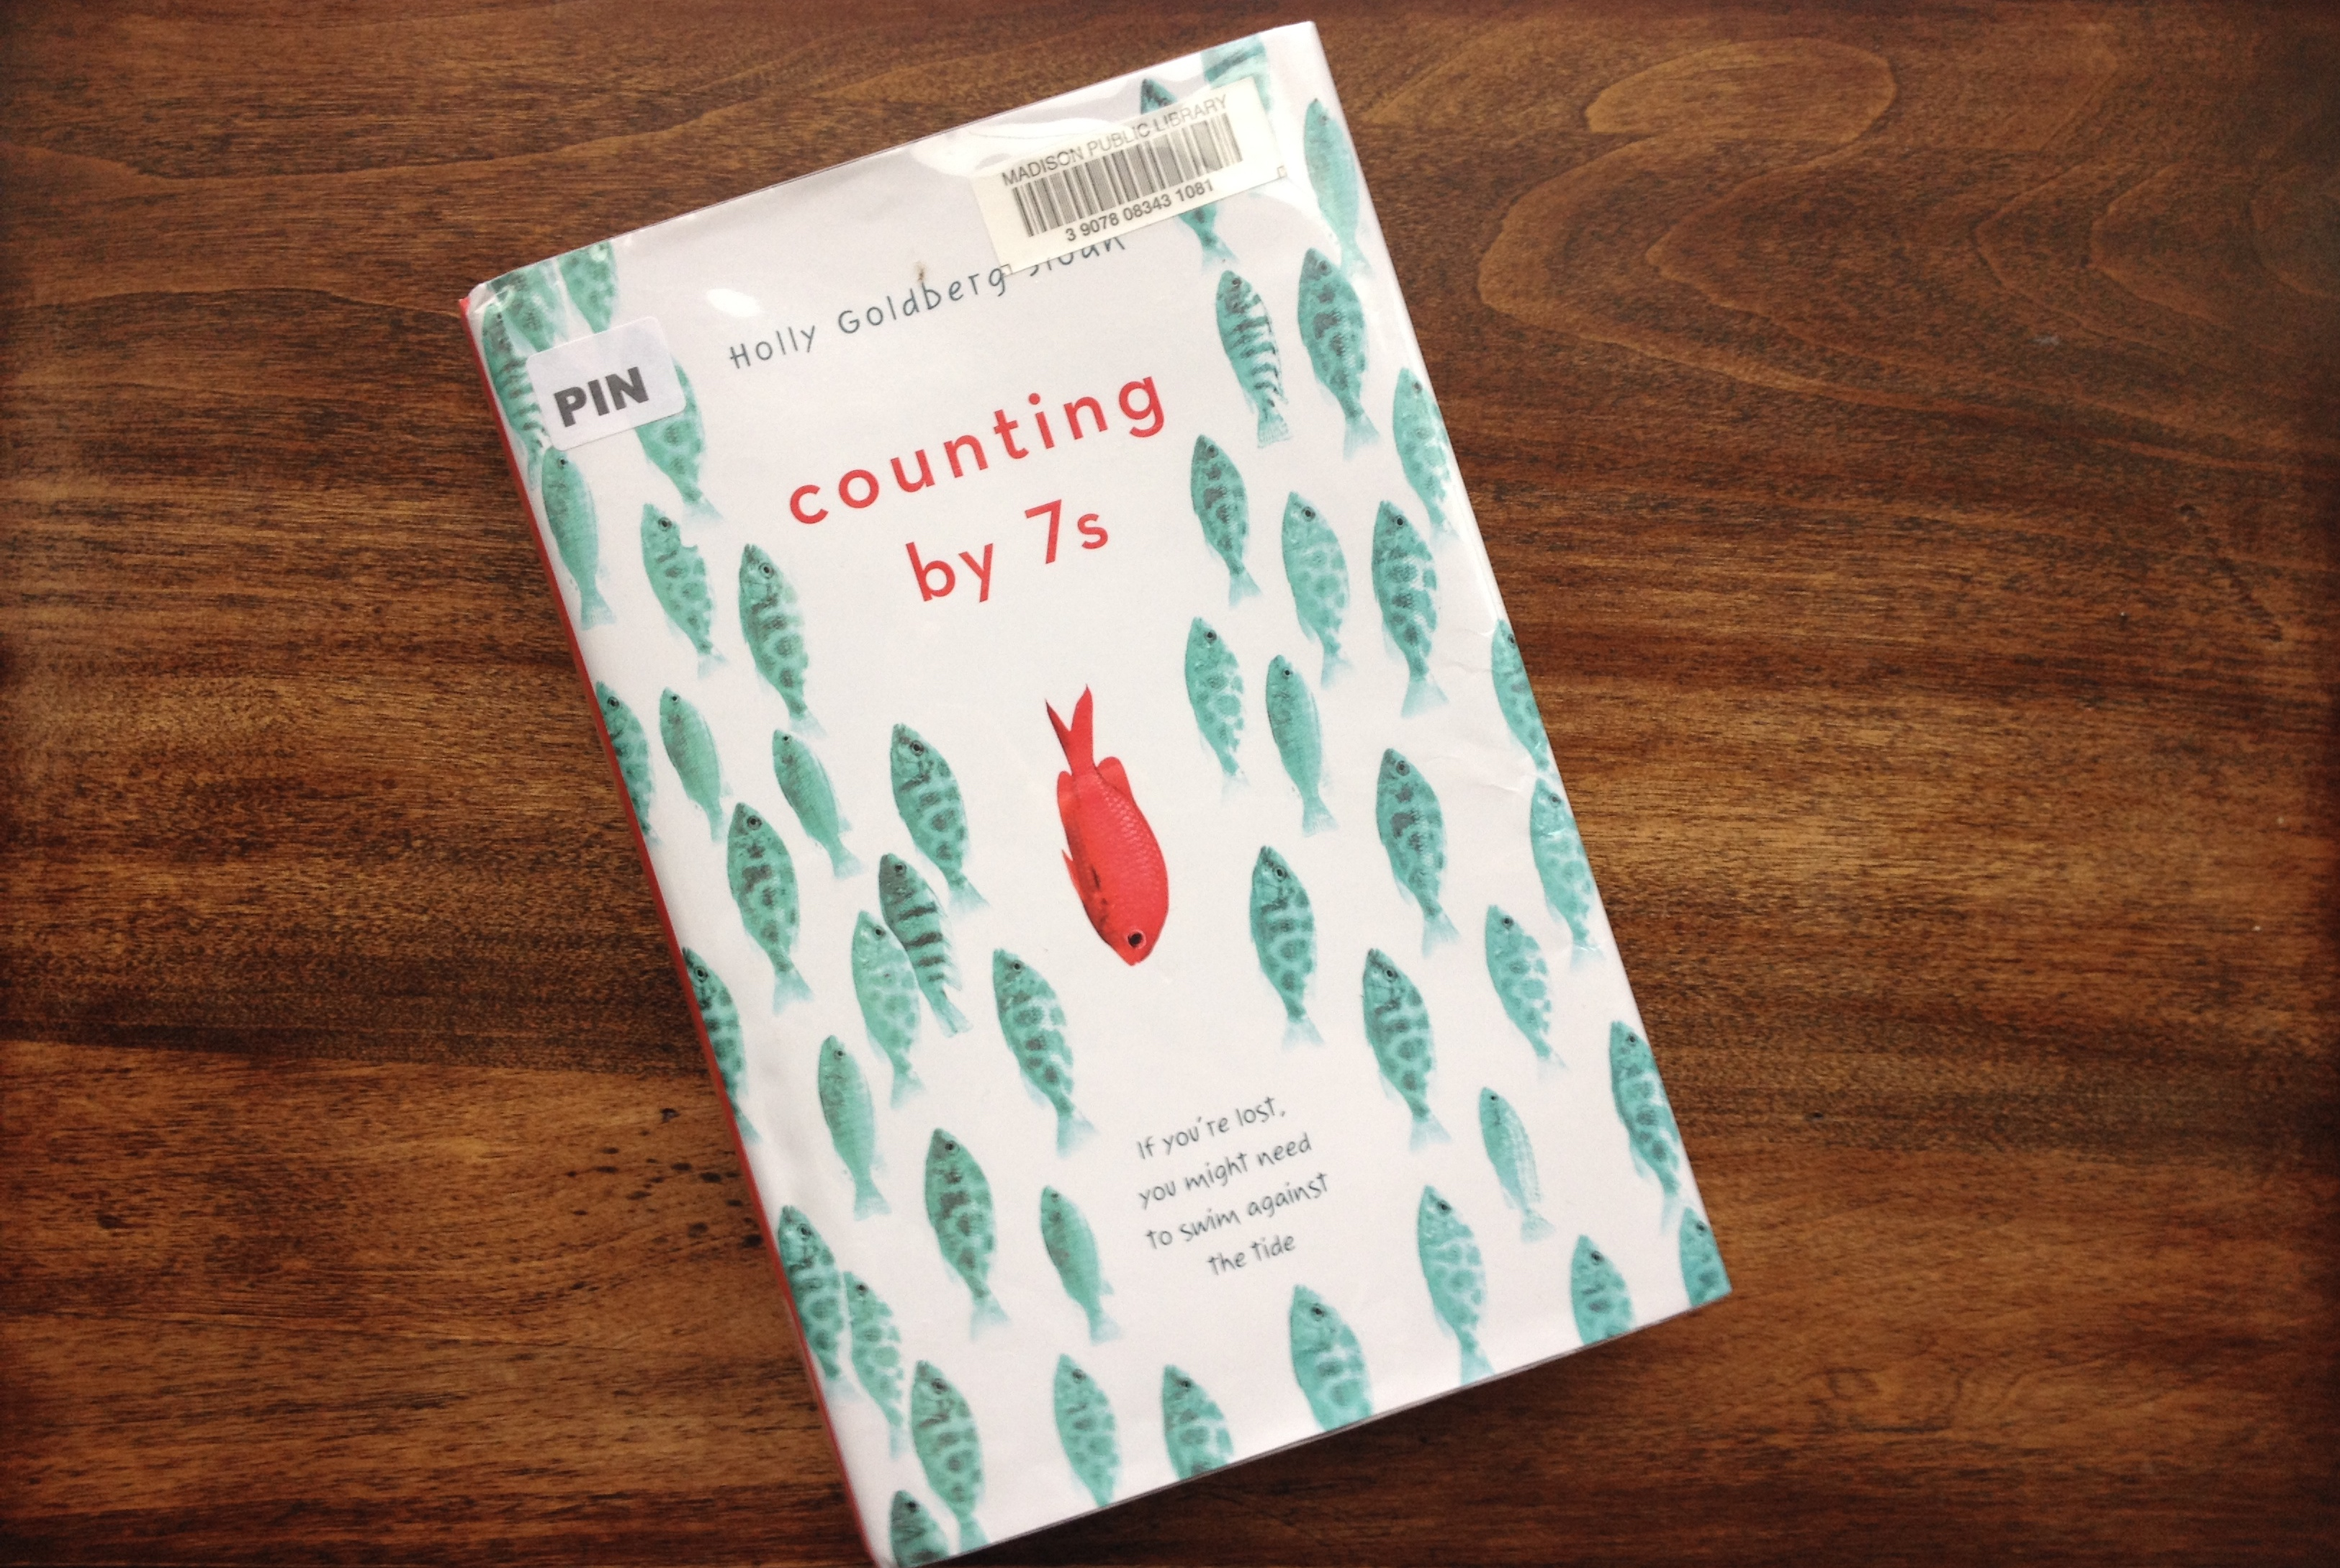 Story In Review Counting By 7s By Holly Goldberg Sloan